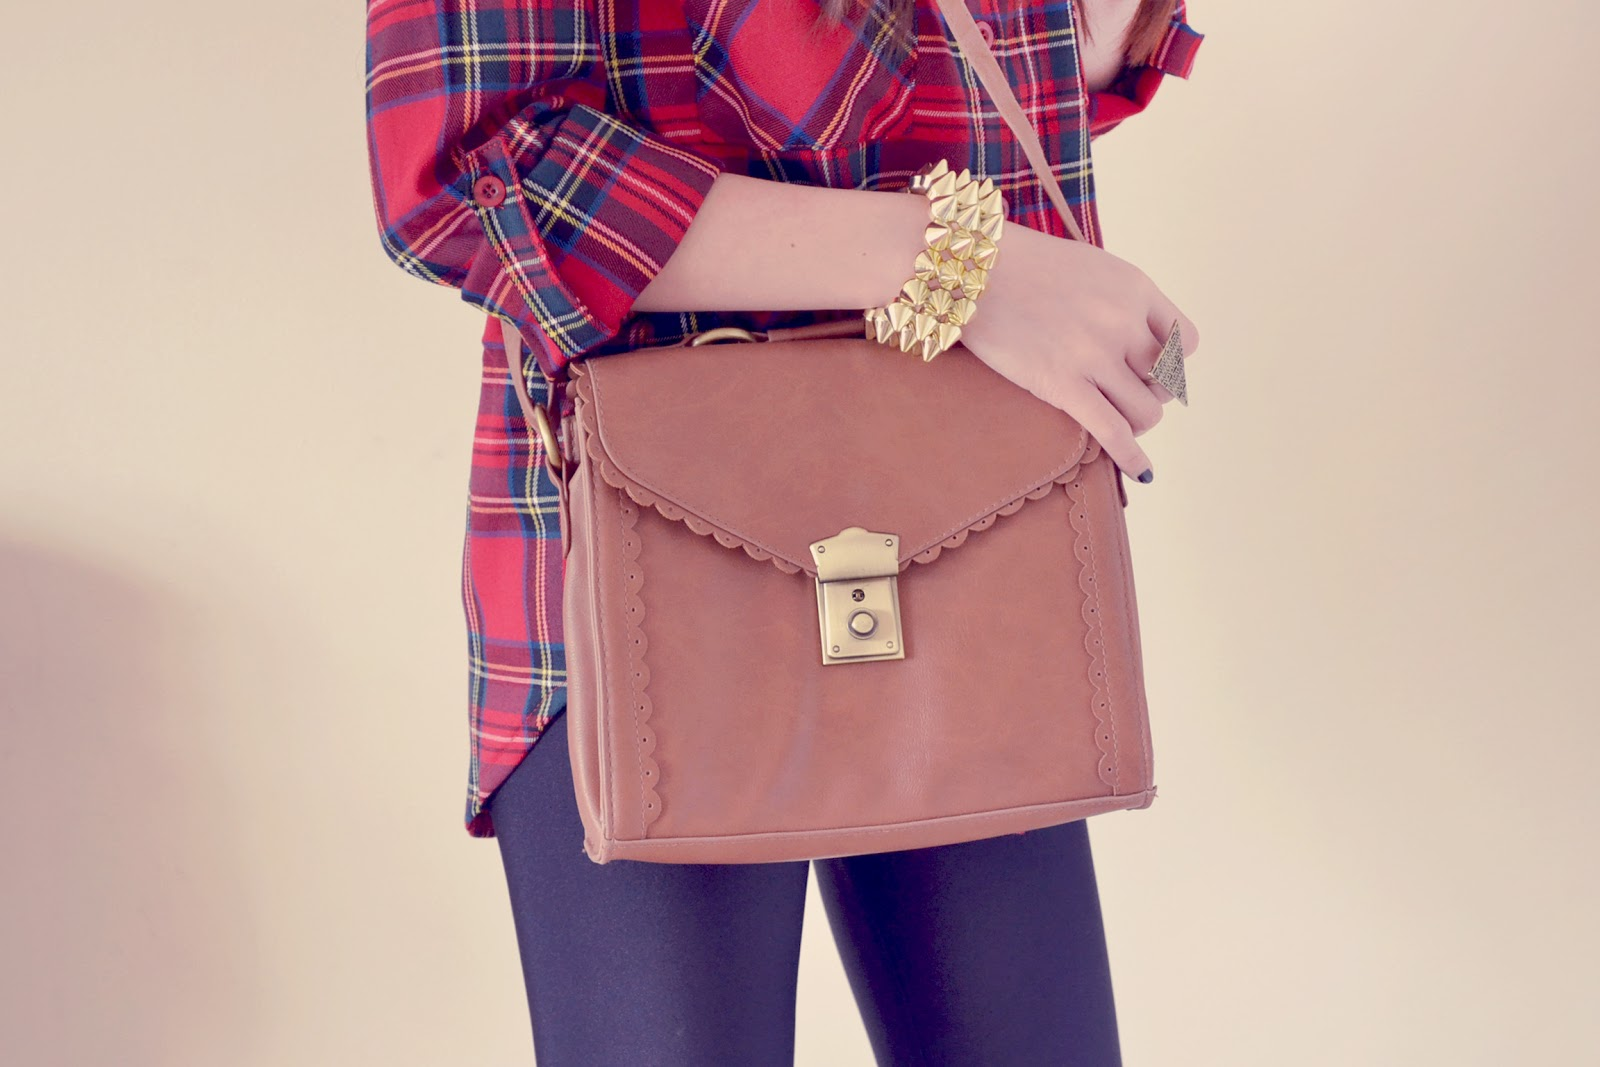 tan satchel bag, brown handbag